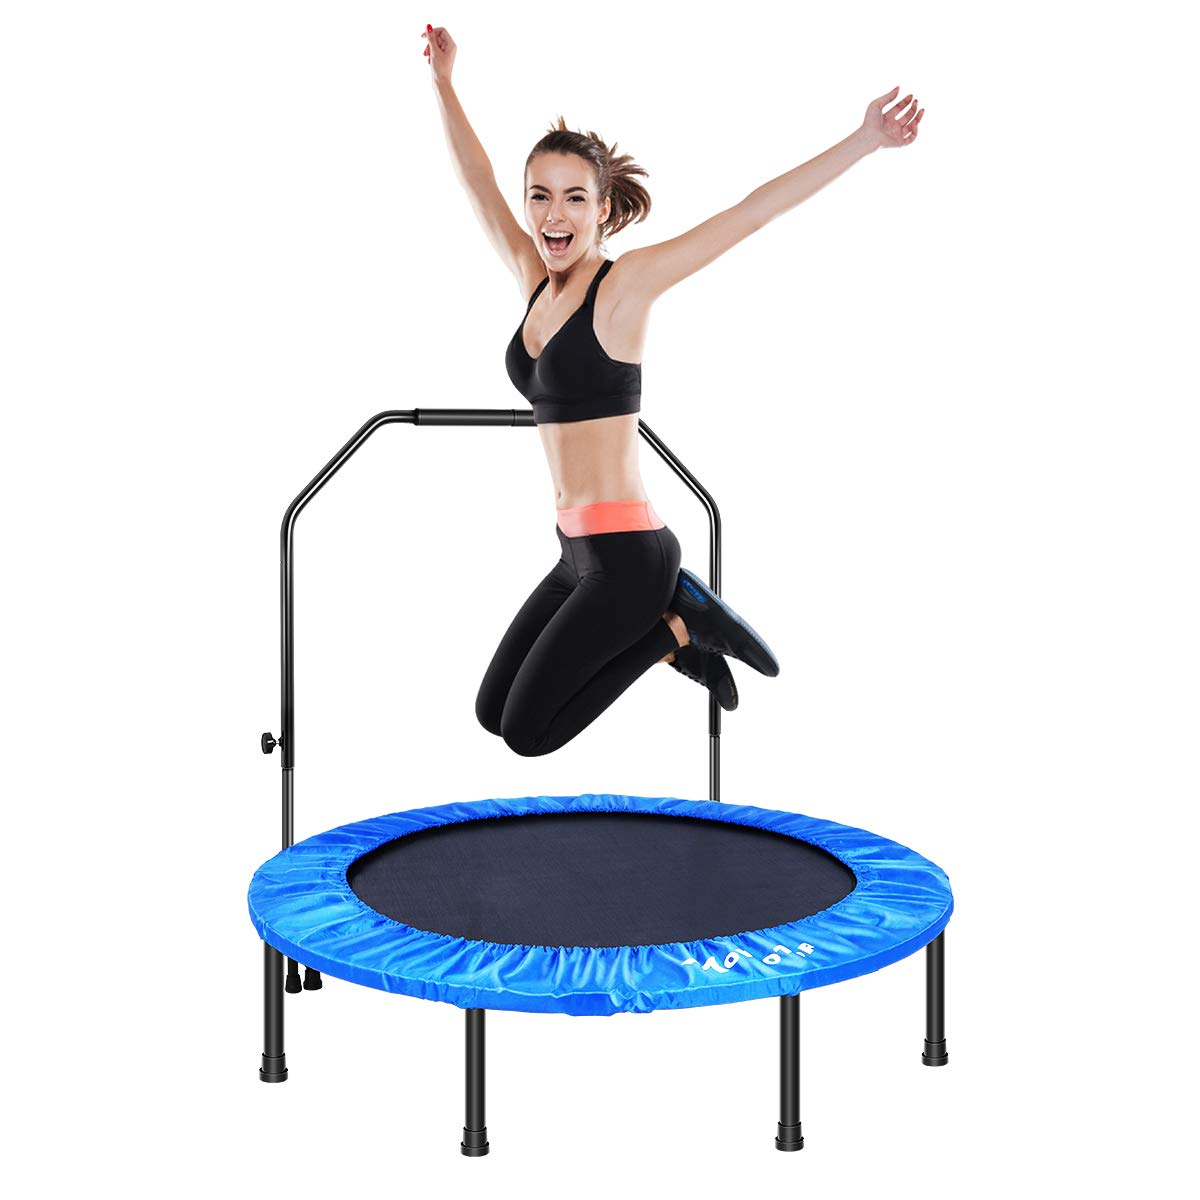 MOVTOTOP 48'' Folding Indoor Trampoline, Portable Trampoline Rebounder with Adjustable Handrail, Kids Adults Trampoline for Fitness Cardio Workout Training (Max Limit 286lbs)